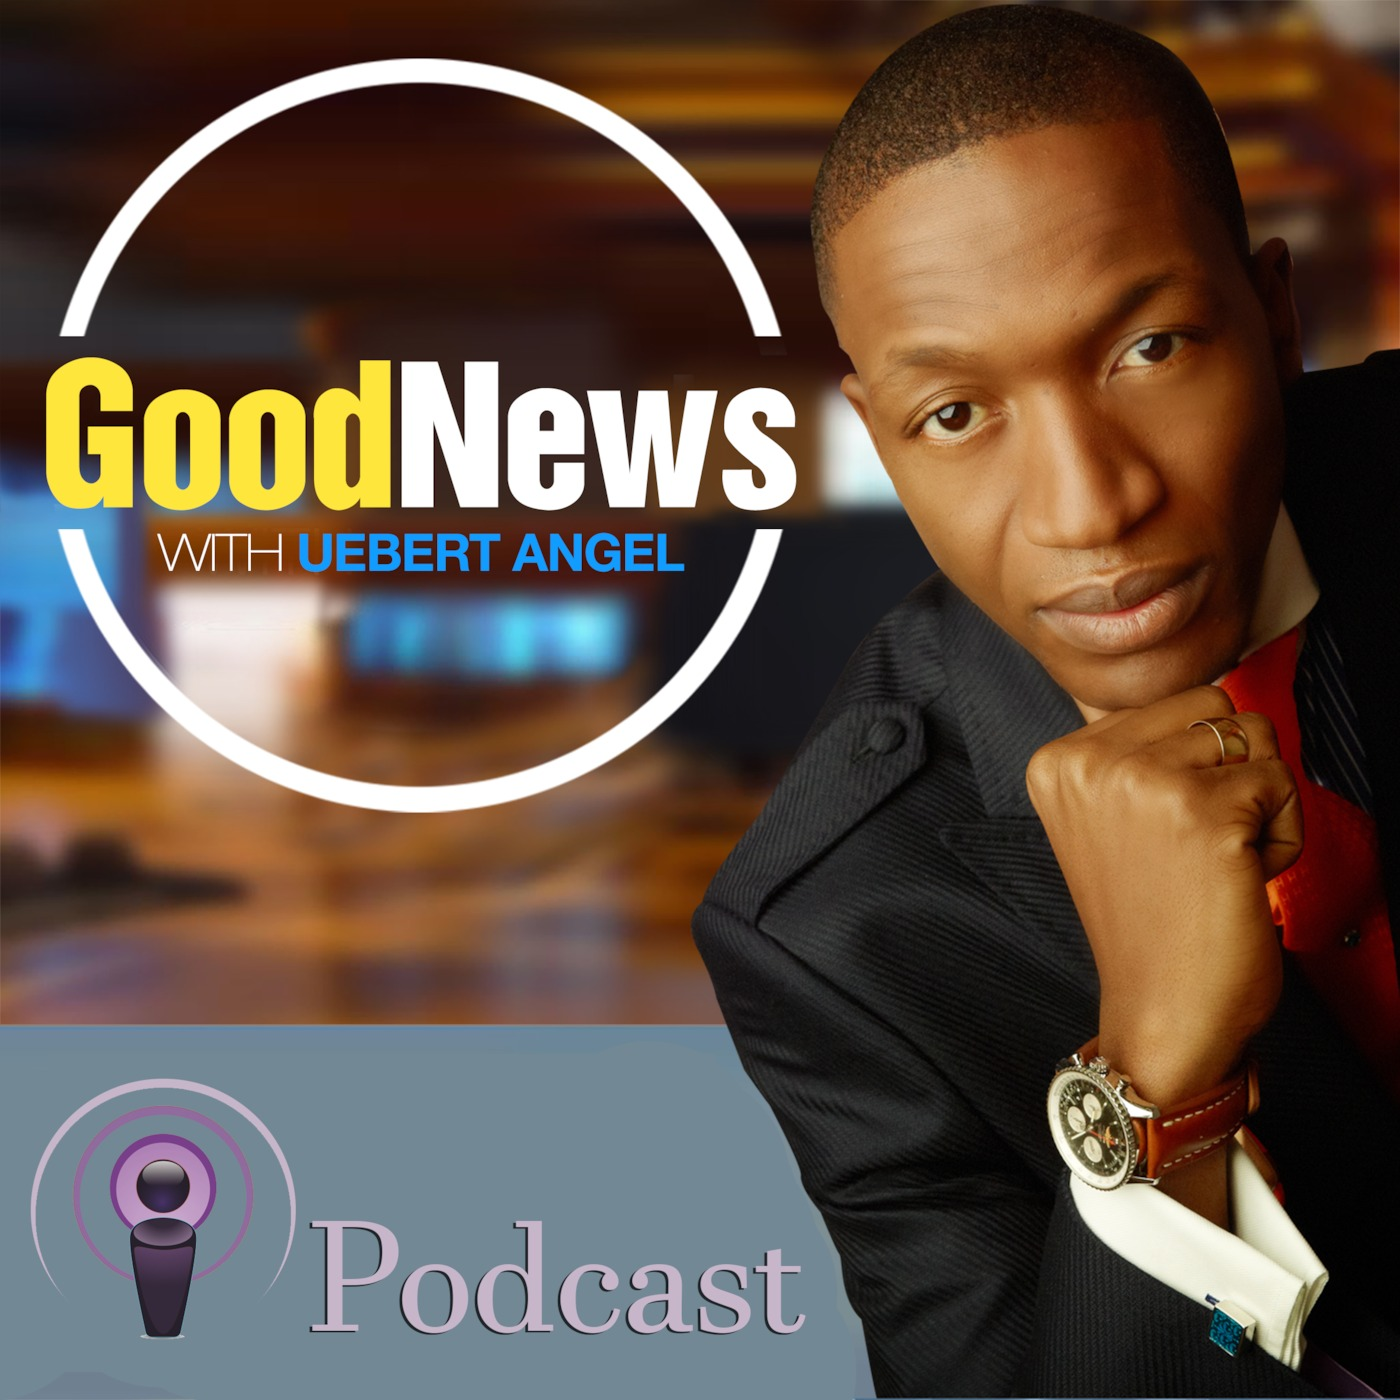 The GoodNews Church's Podcast